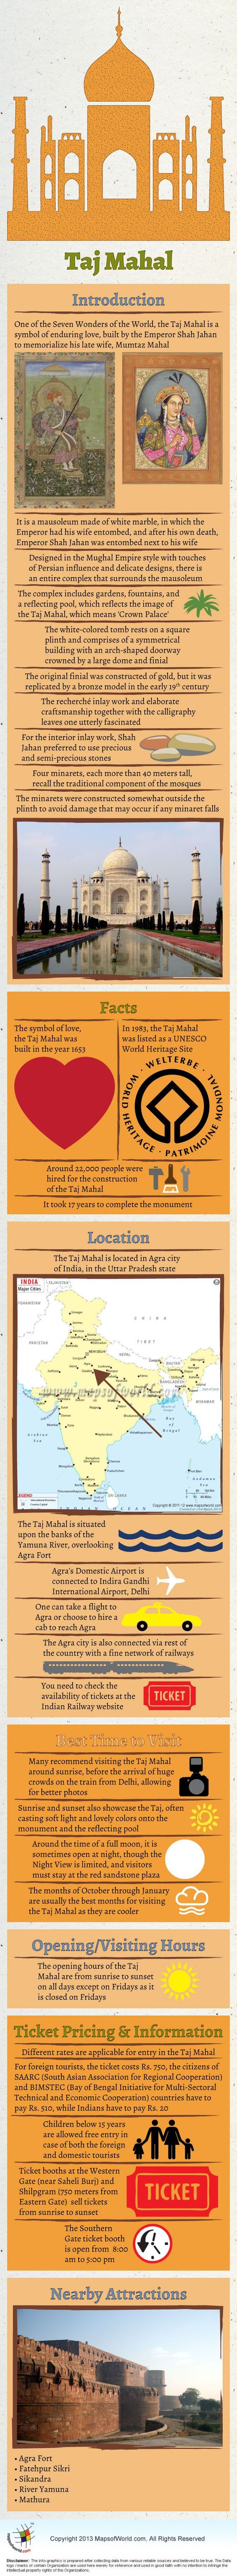 Ancient History India -                                                              Taj Mahal #Infographic: The symbol of #love, the Taj Mahal was built in the year 1653. Read more: www.mapsofworld.c...